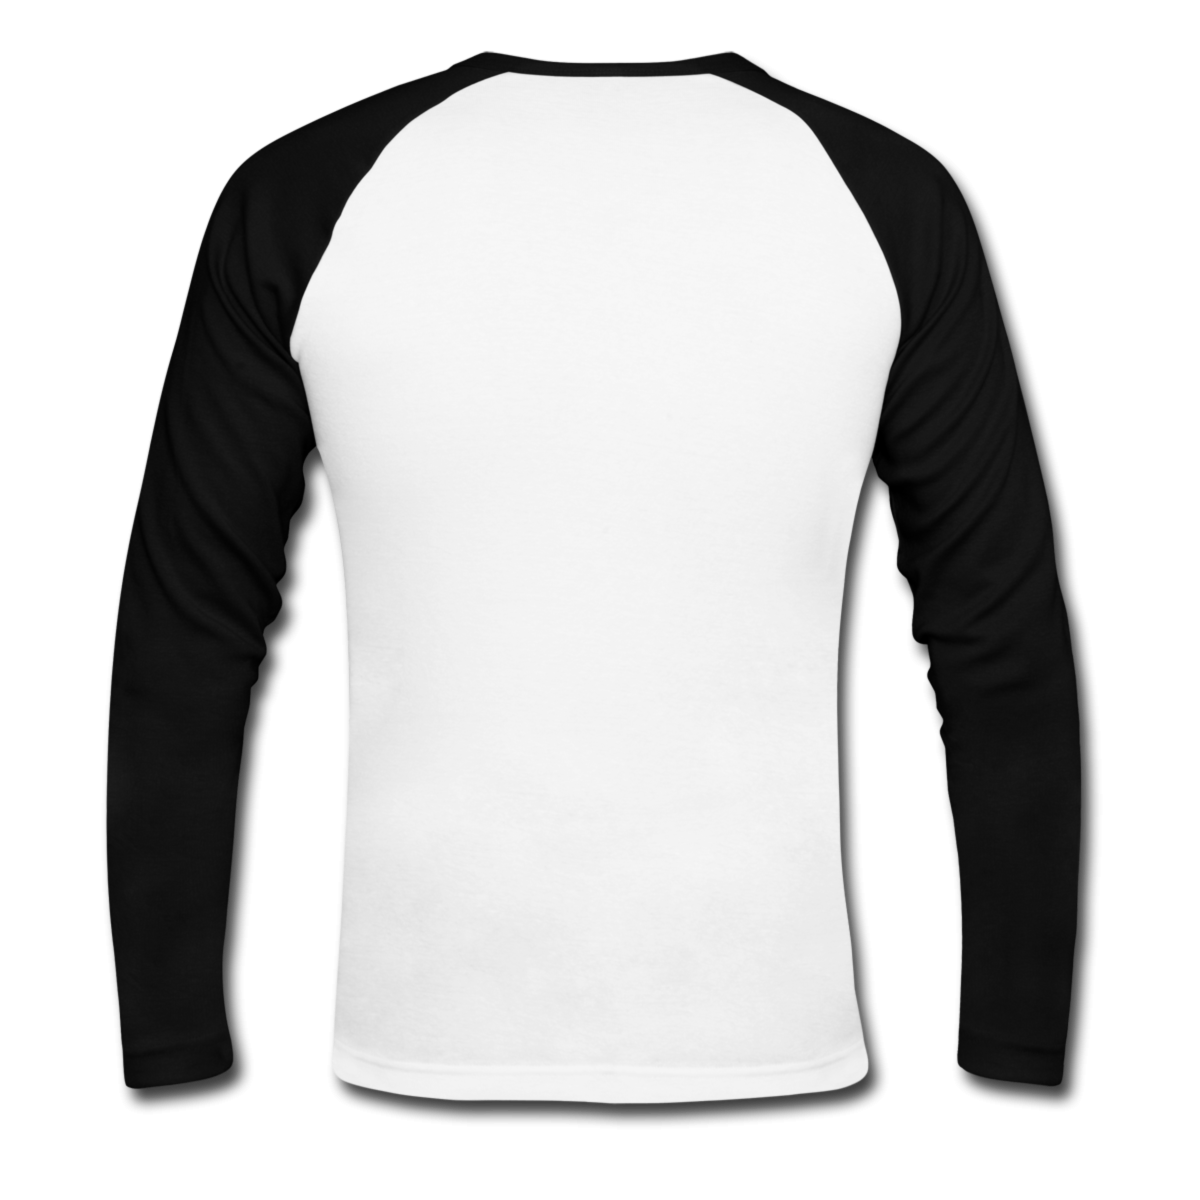 Blank baseball tees template the image for Best baseball t shirts